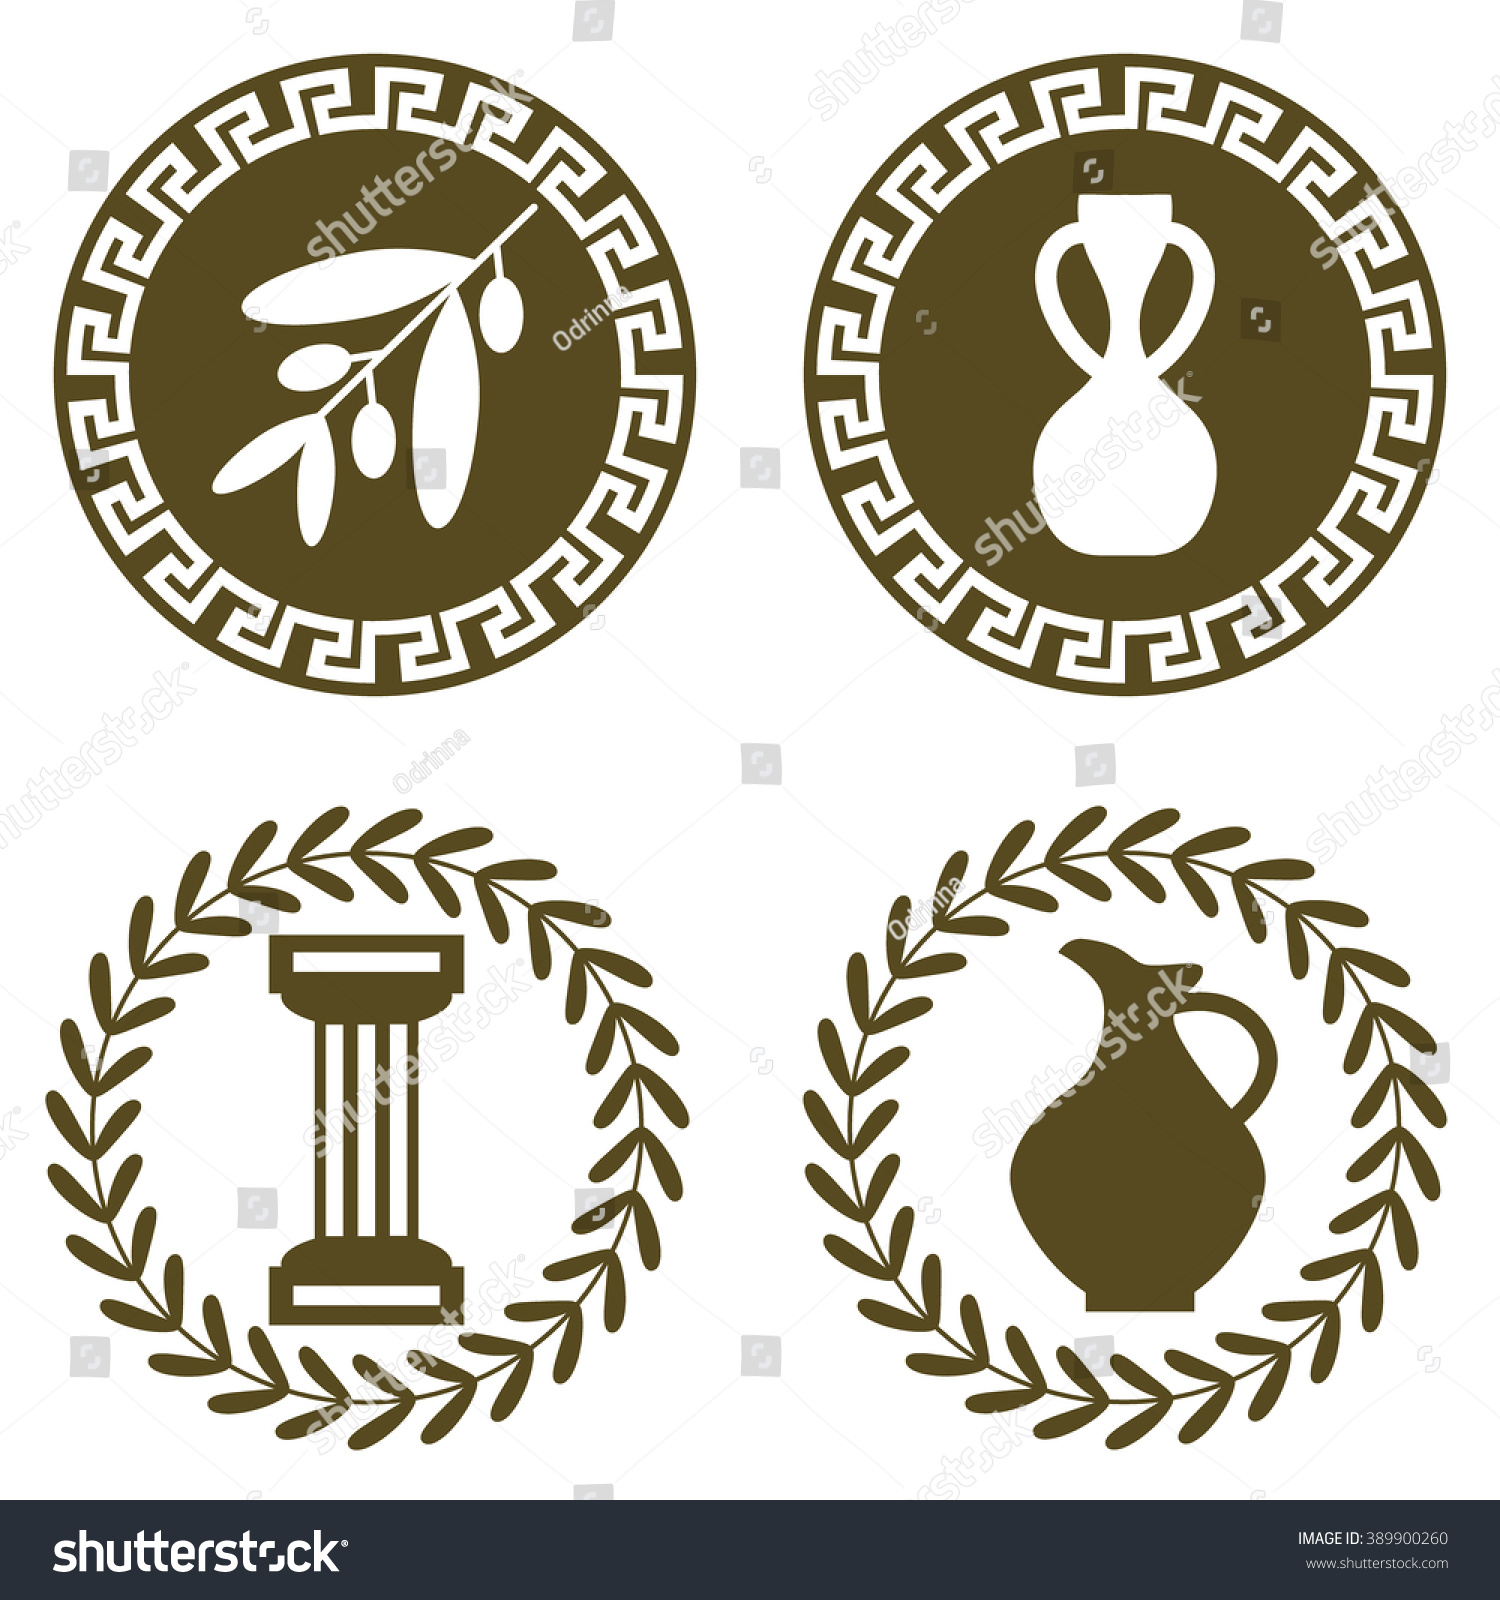 Set ancient logos olive branch amphora stock vector 389900260 set of ancient logos with olive branch amphora jug and doric column the biocorpaavc